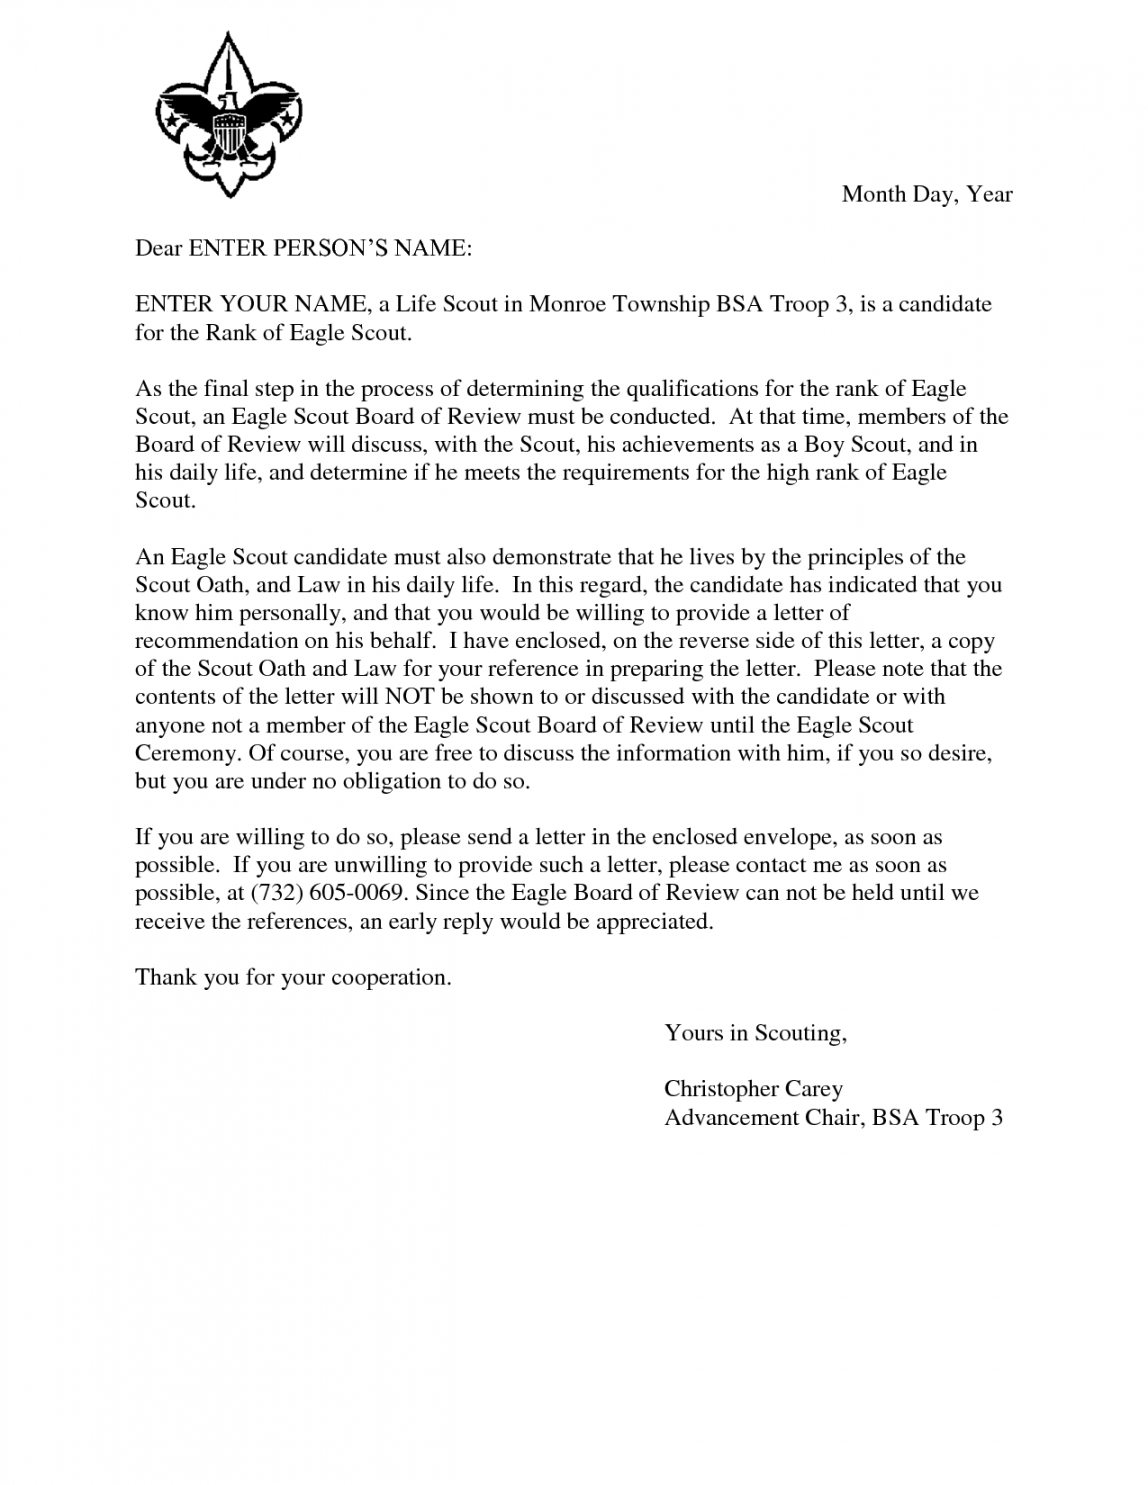 printable eagle scout recommendation letter template word sample